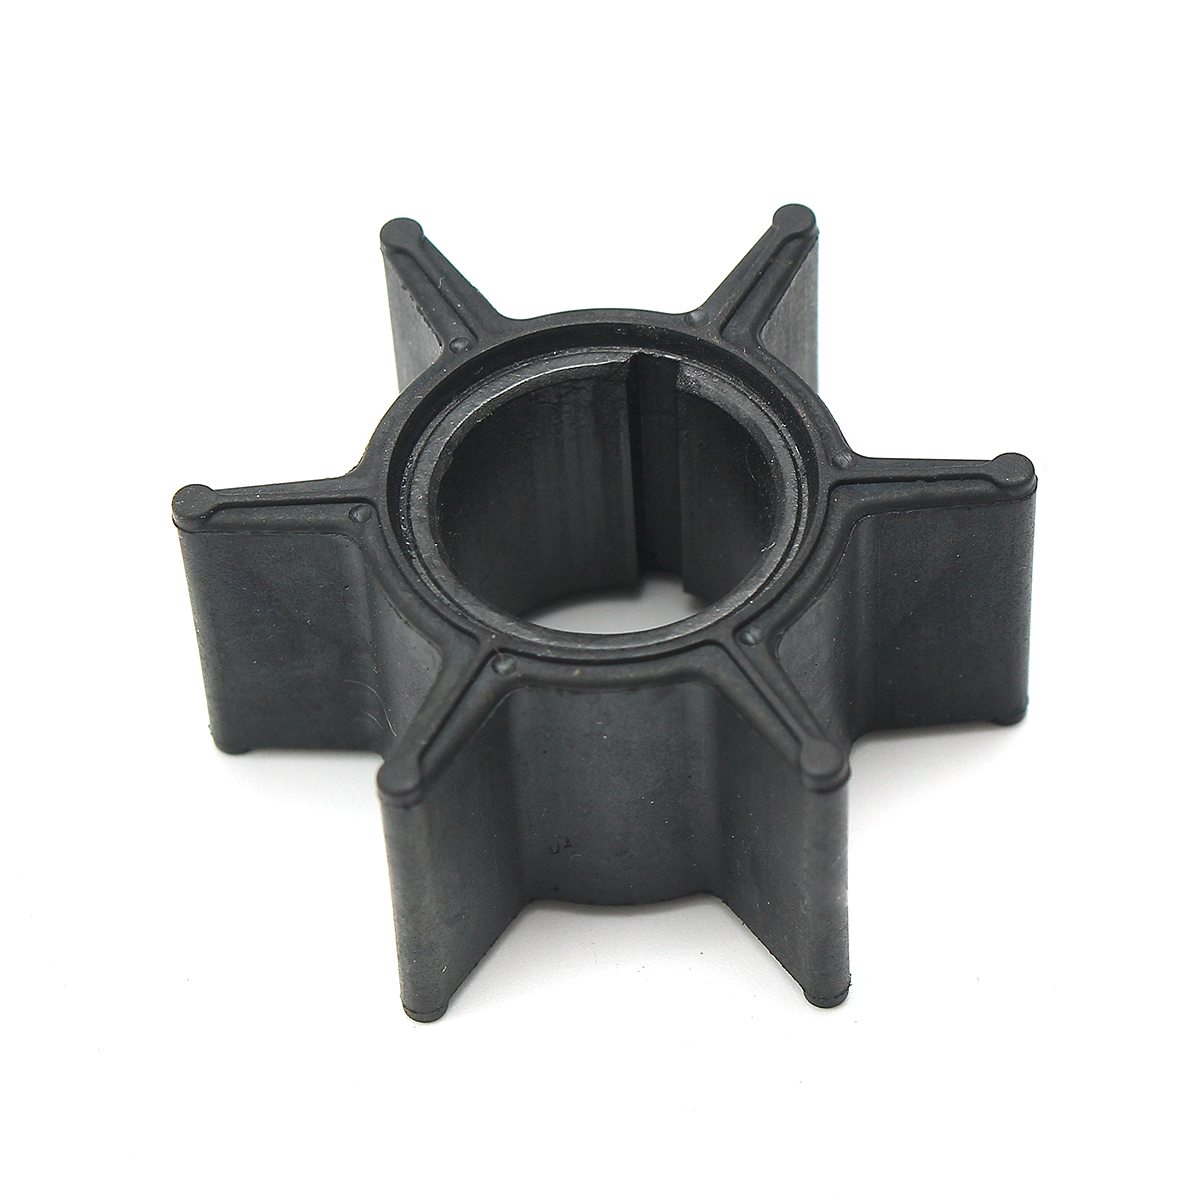 Water Pump Impeller For Tohatsu Mercury Nissan 25/30/40HP Outboard 345-65021-0